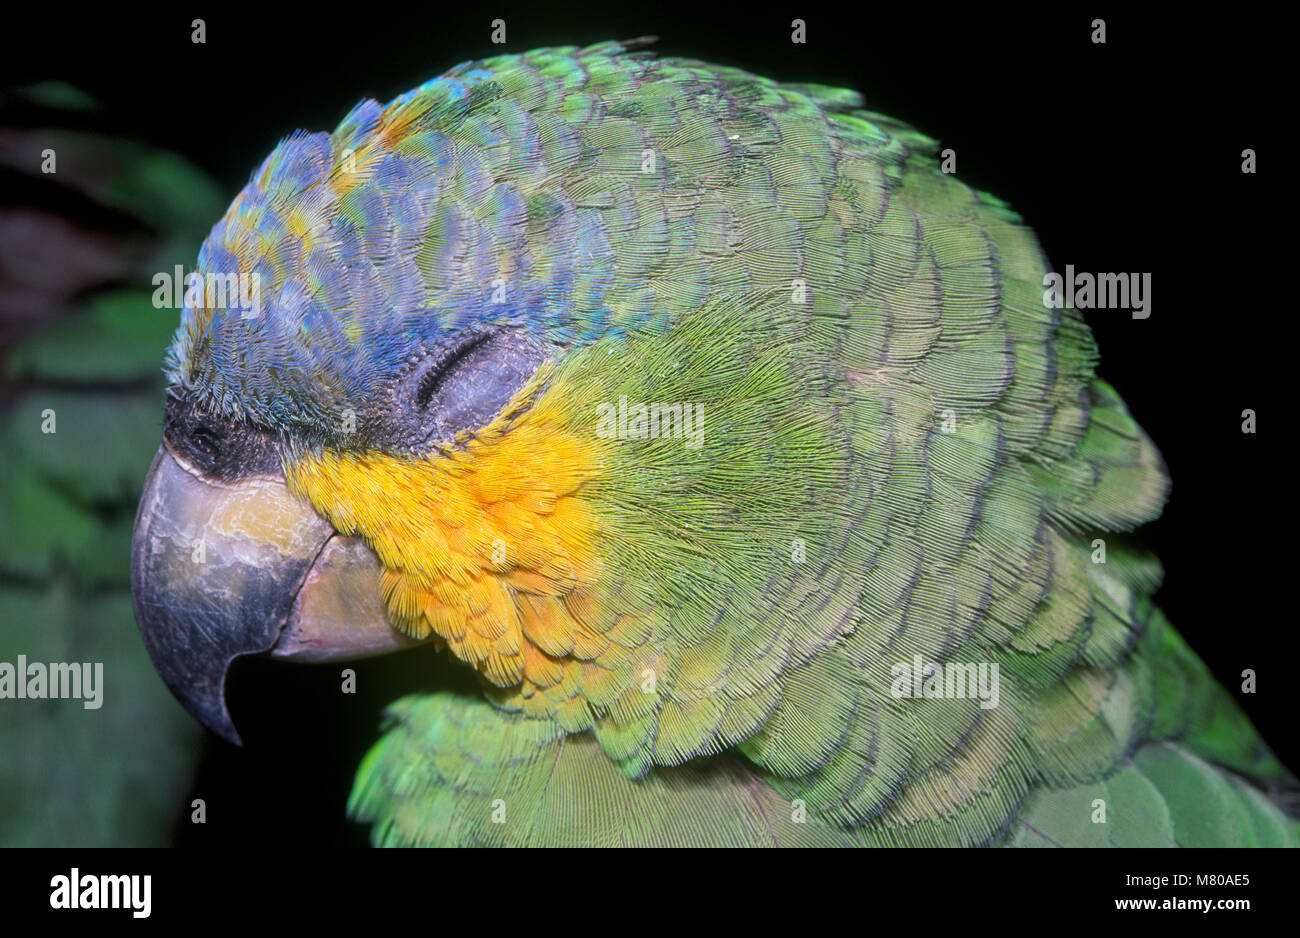 Orange-winged amazon (Amazona amazonica) sleeping, Parque das Aves, Foz do Iguaçu, Brazil - Stock Image